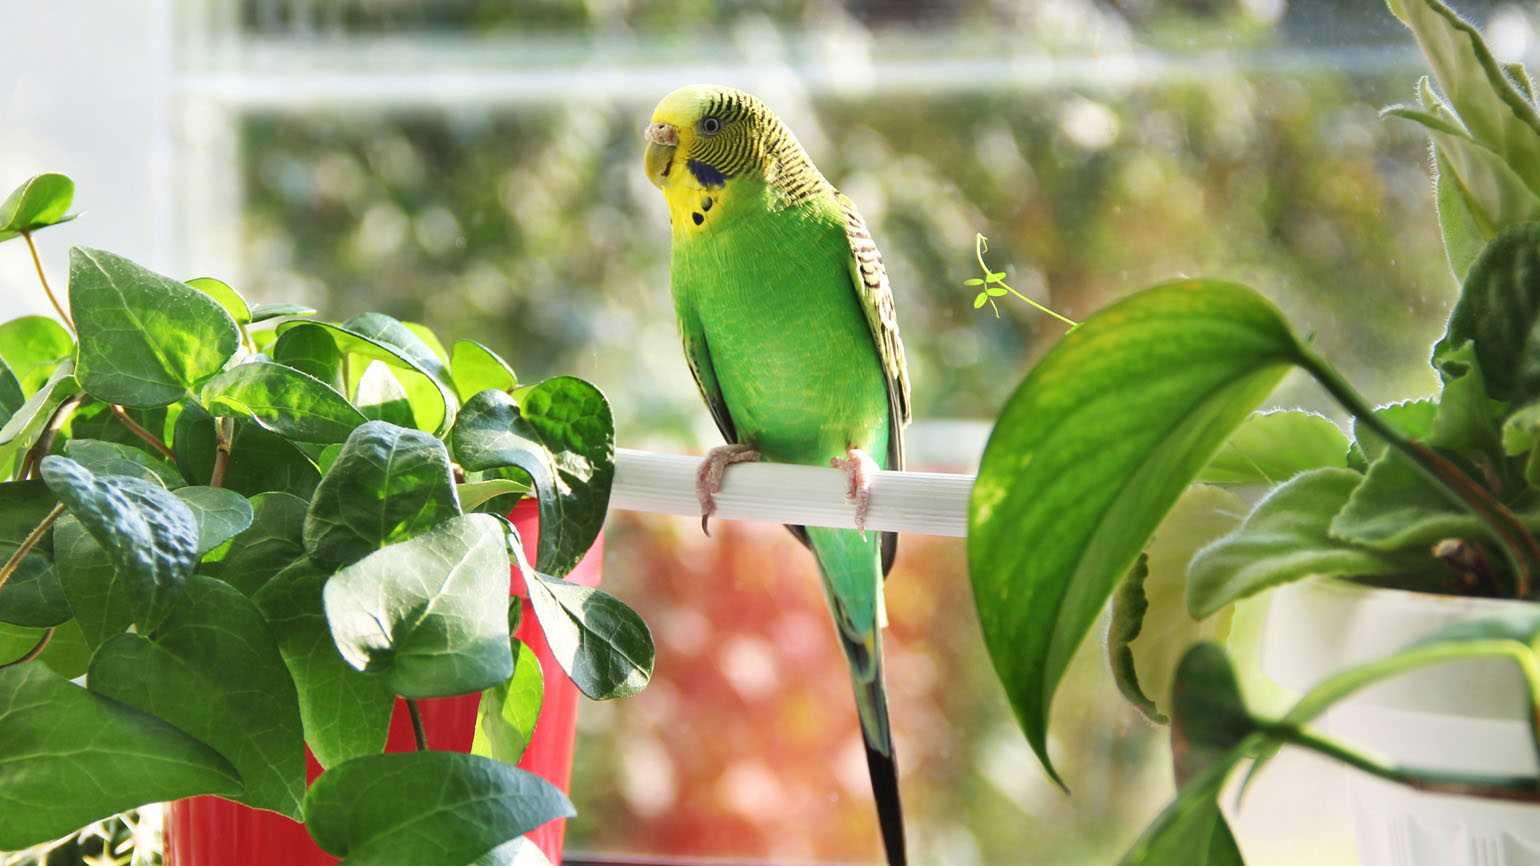 A green parakeet relaxing by indoor plants.